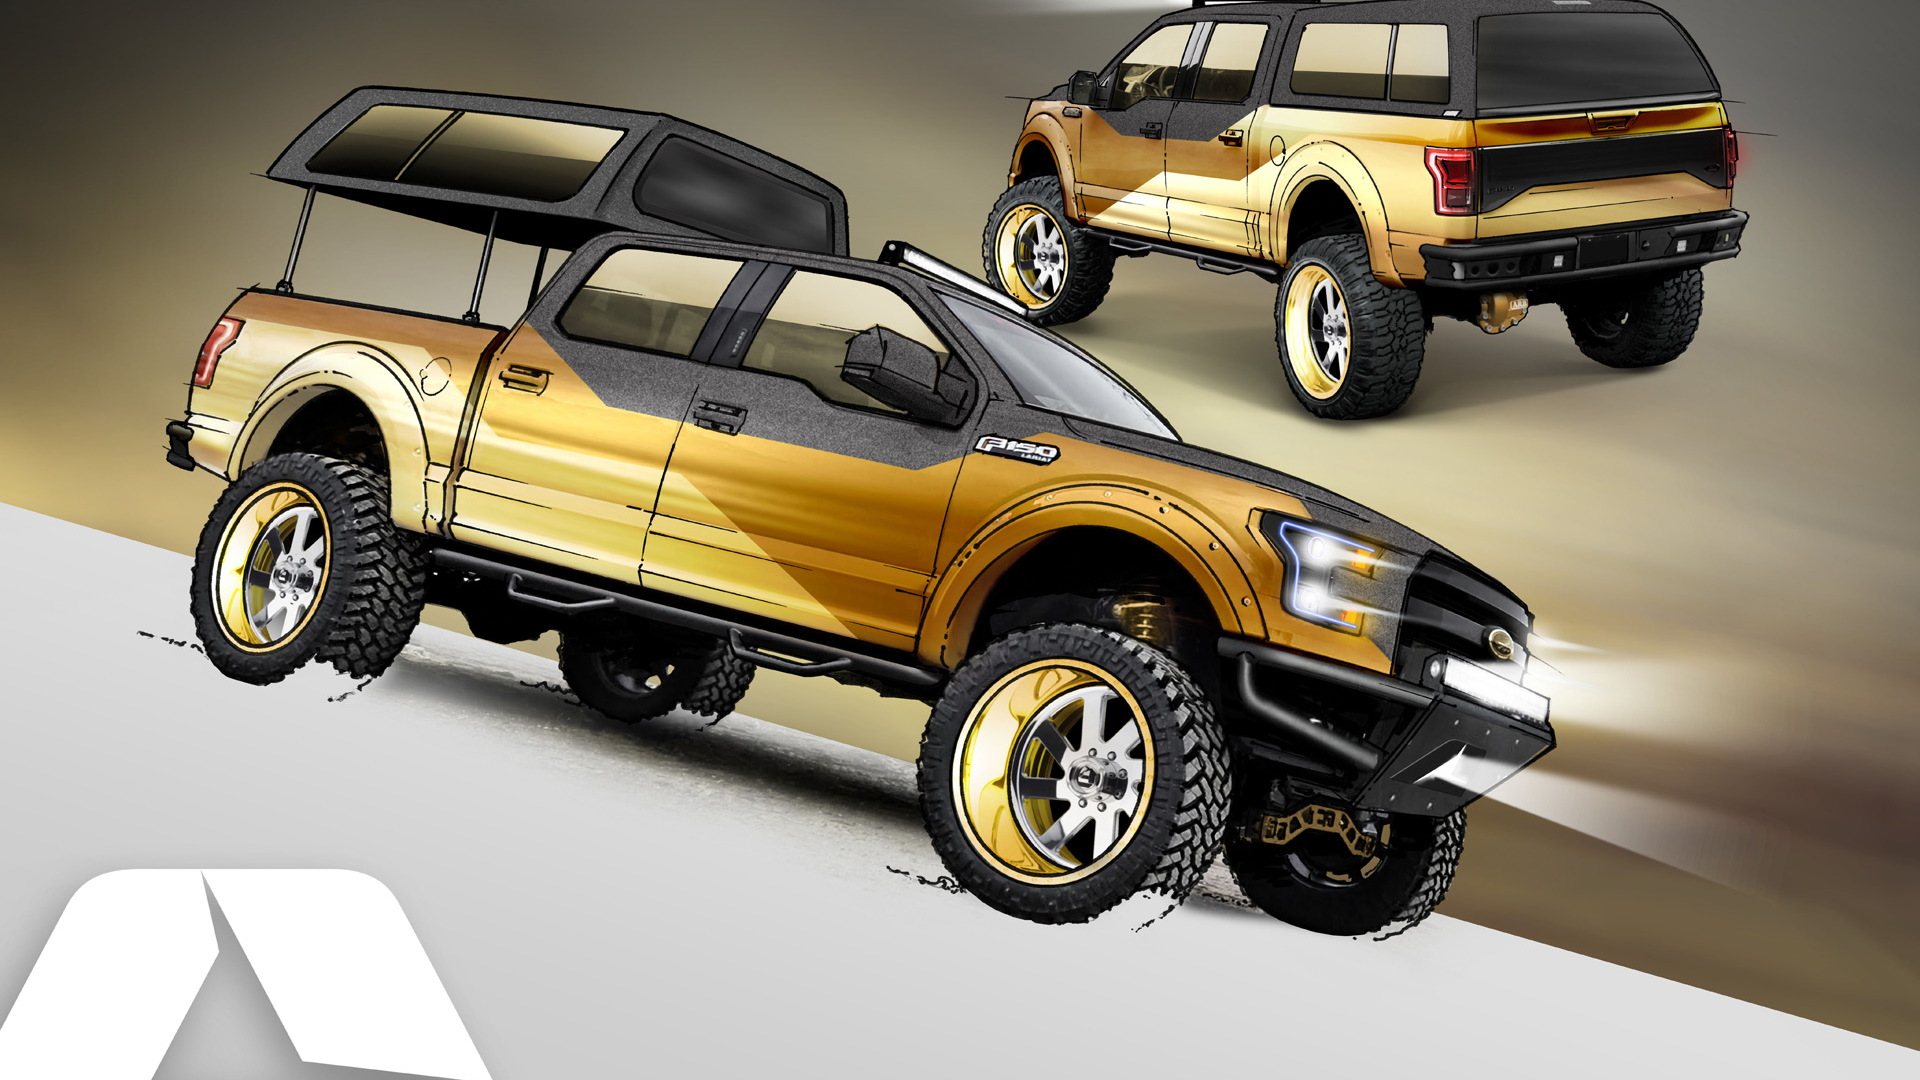 2016 Ford F-150 Gold Standard Project Truck by A.R.E.